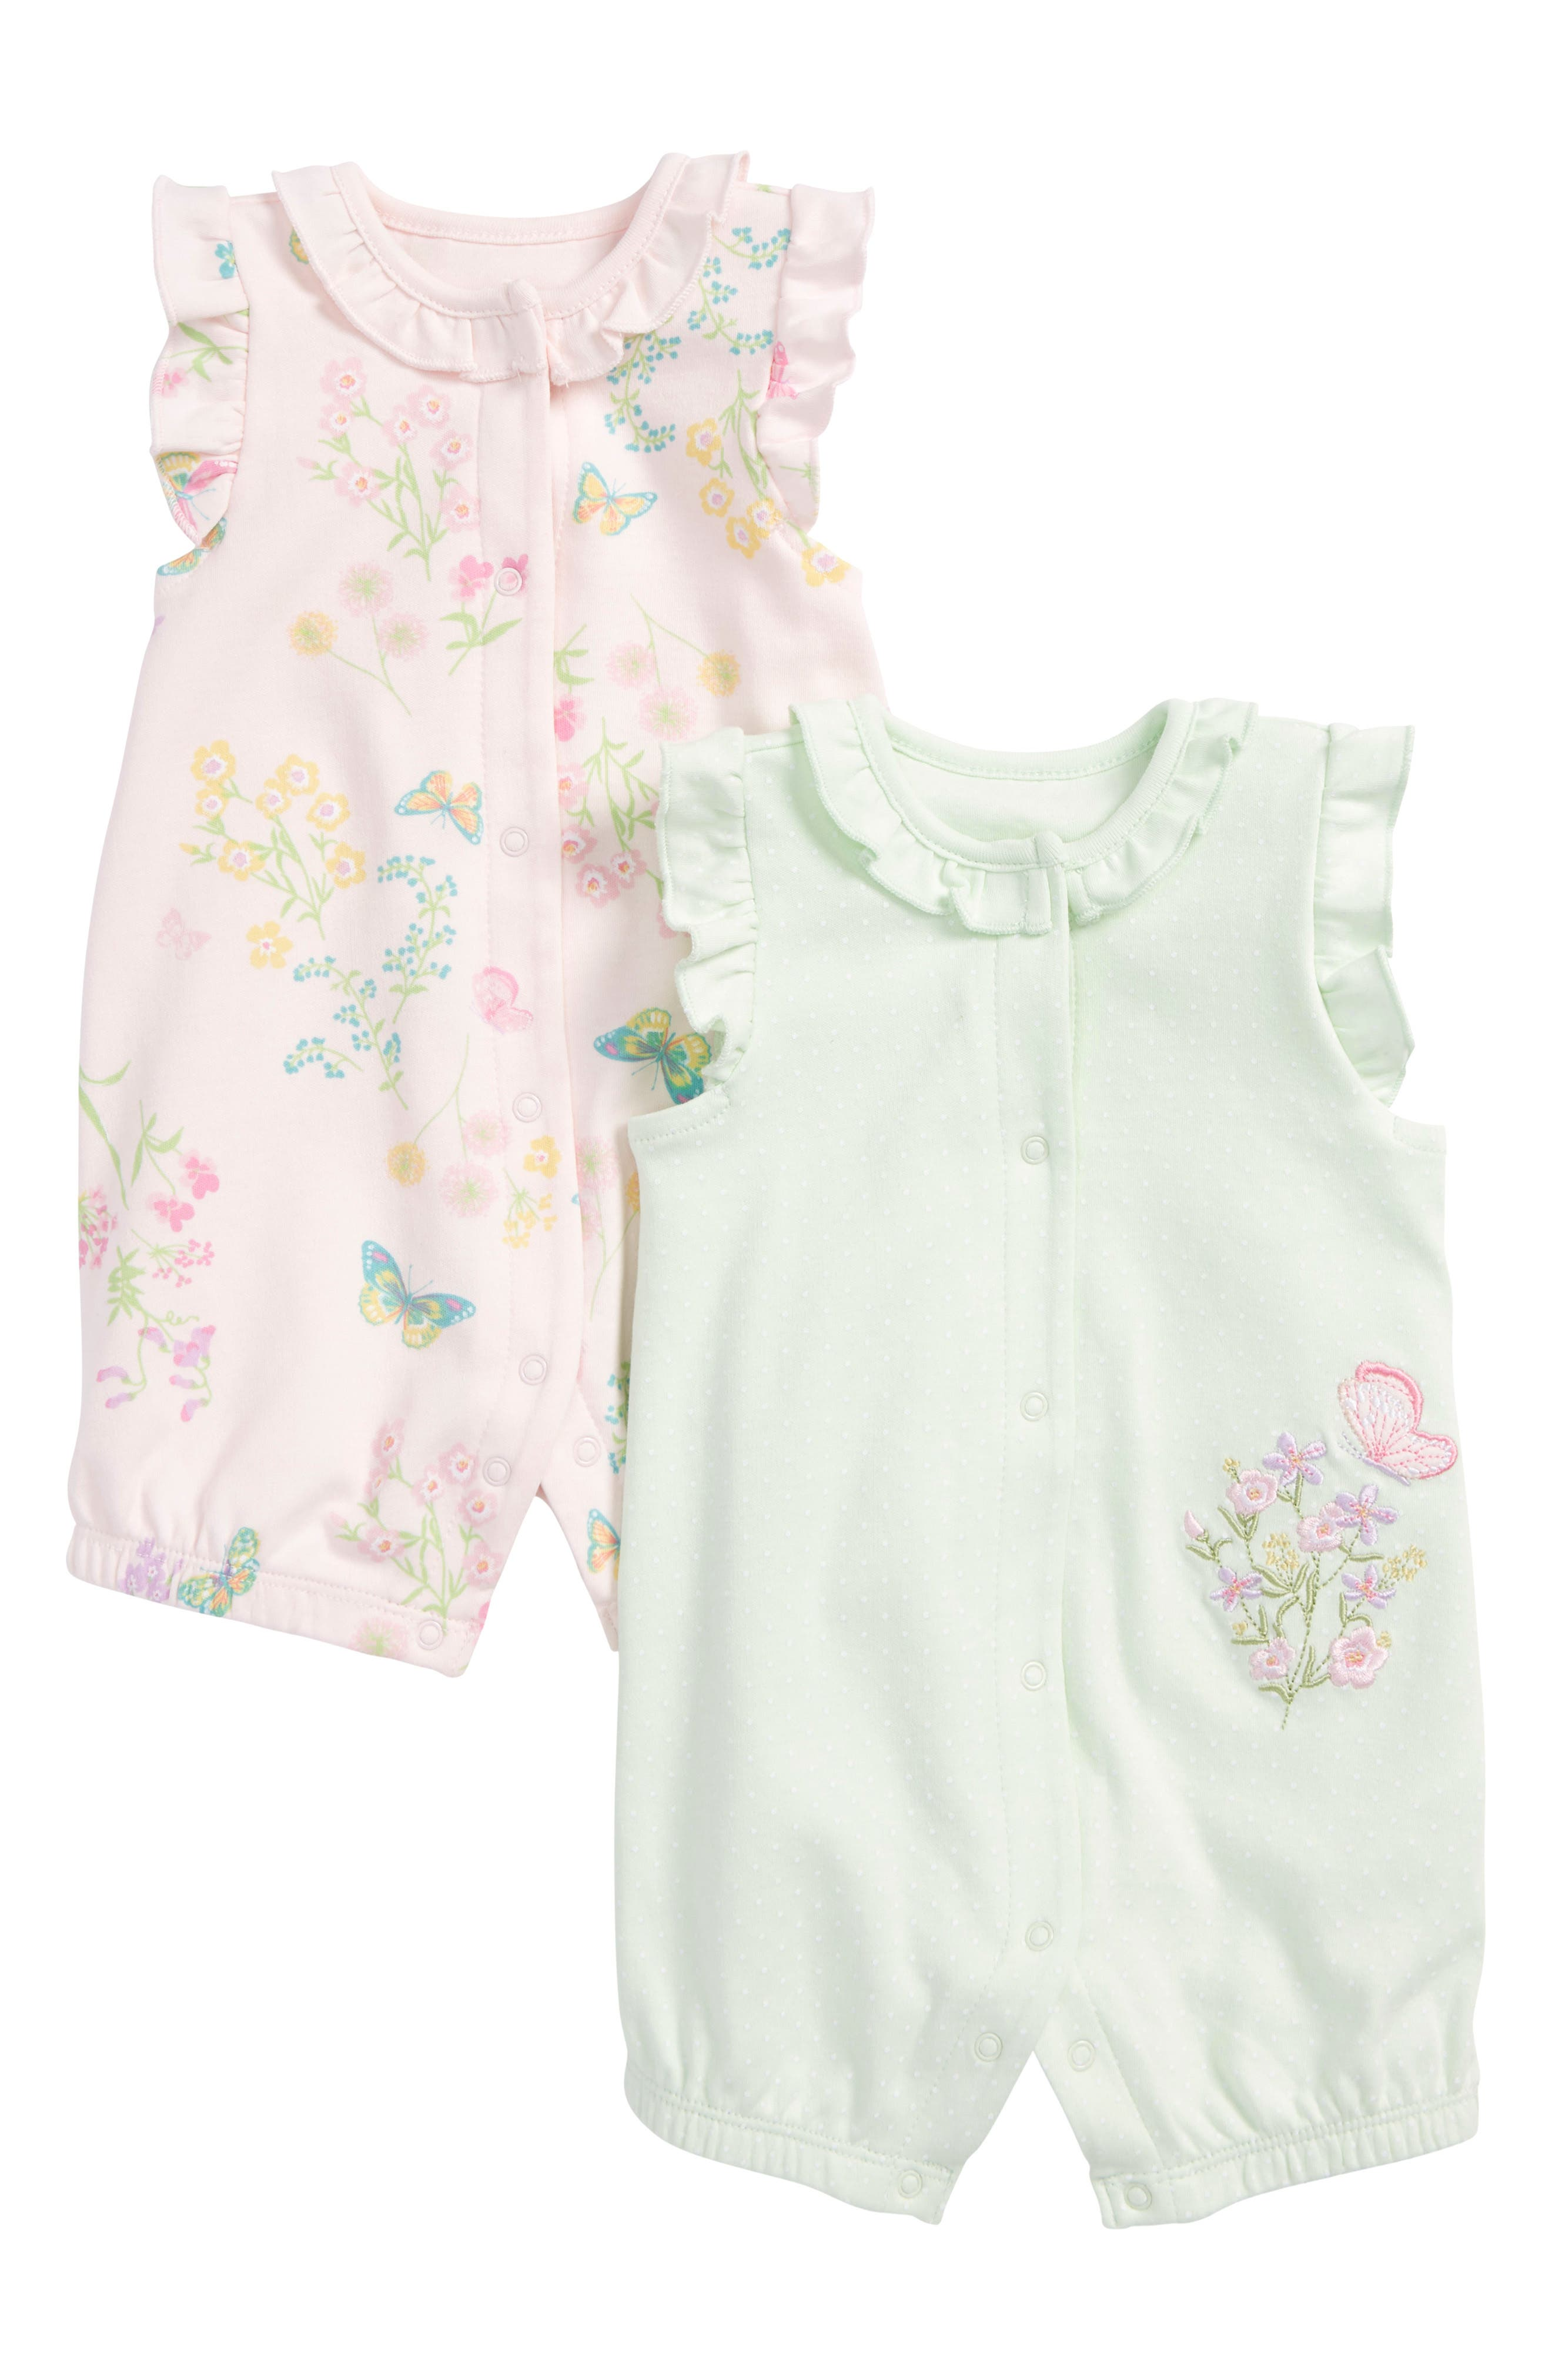 Alternate Image 1 Selected - Little Me Botanical 2-Pack Rompers (Baby Girls)